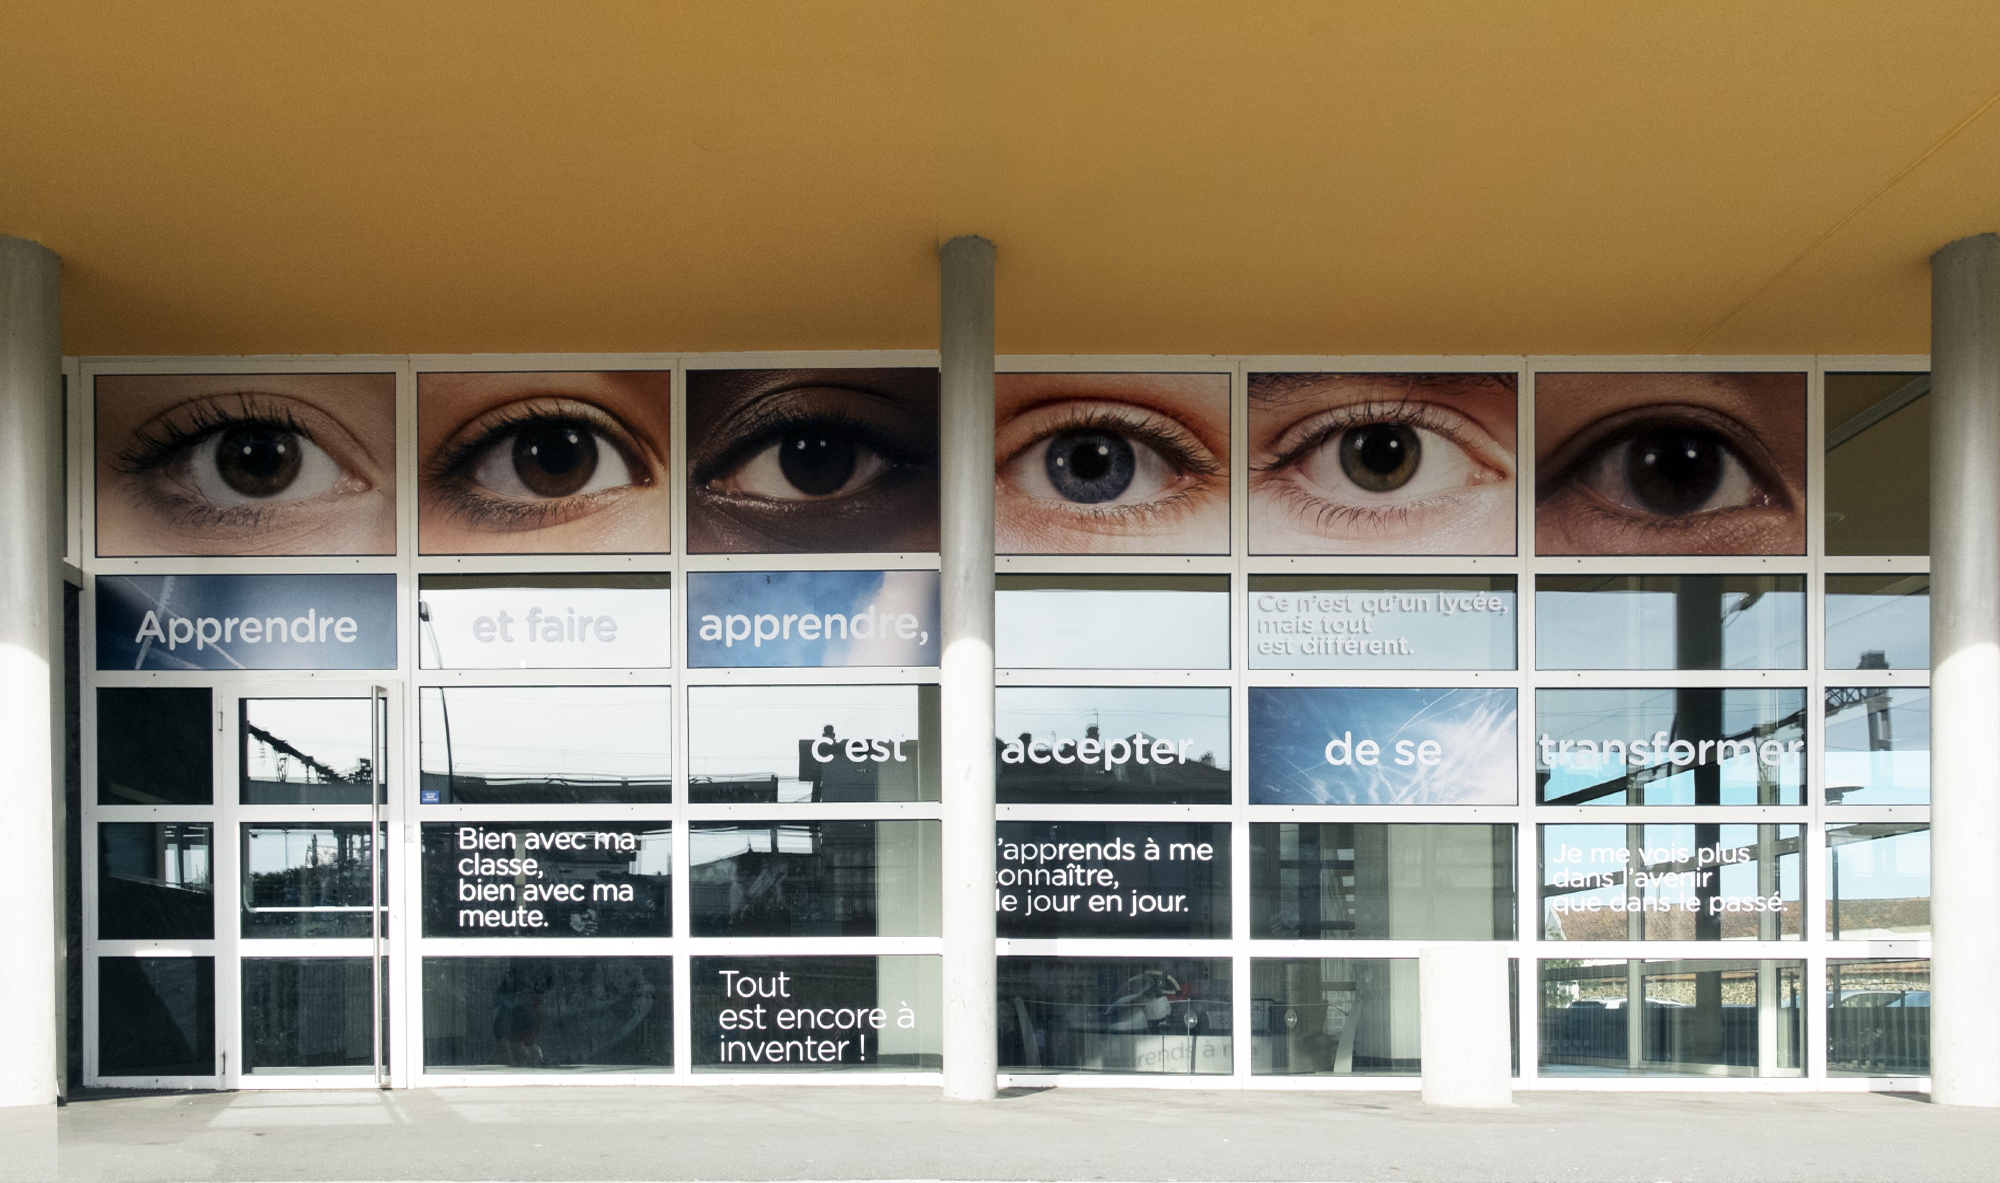 Nouvelle façade du ML, wide open eyes!